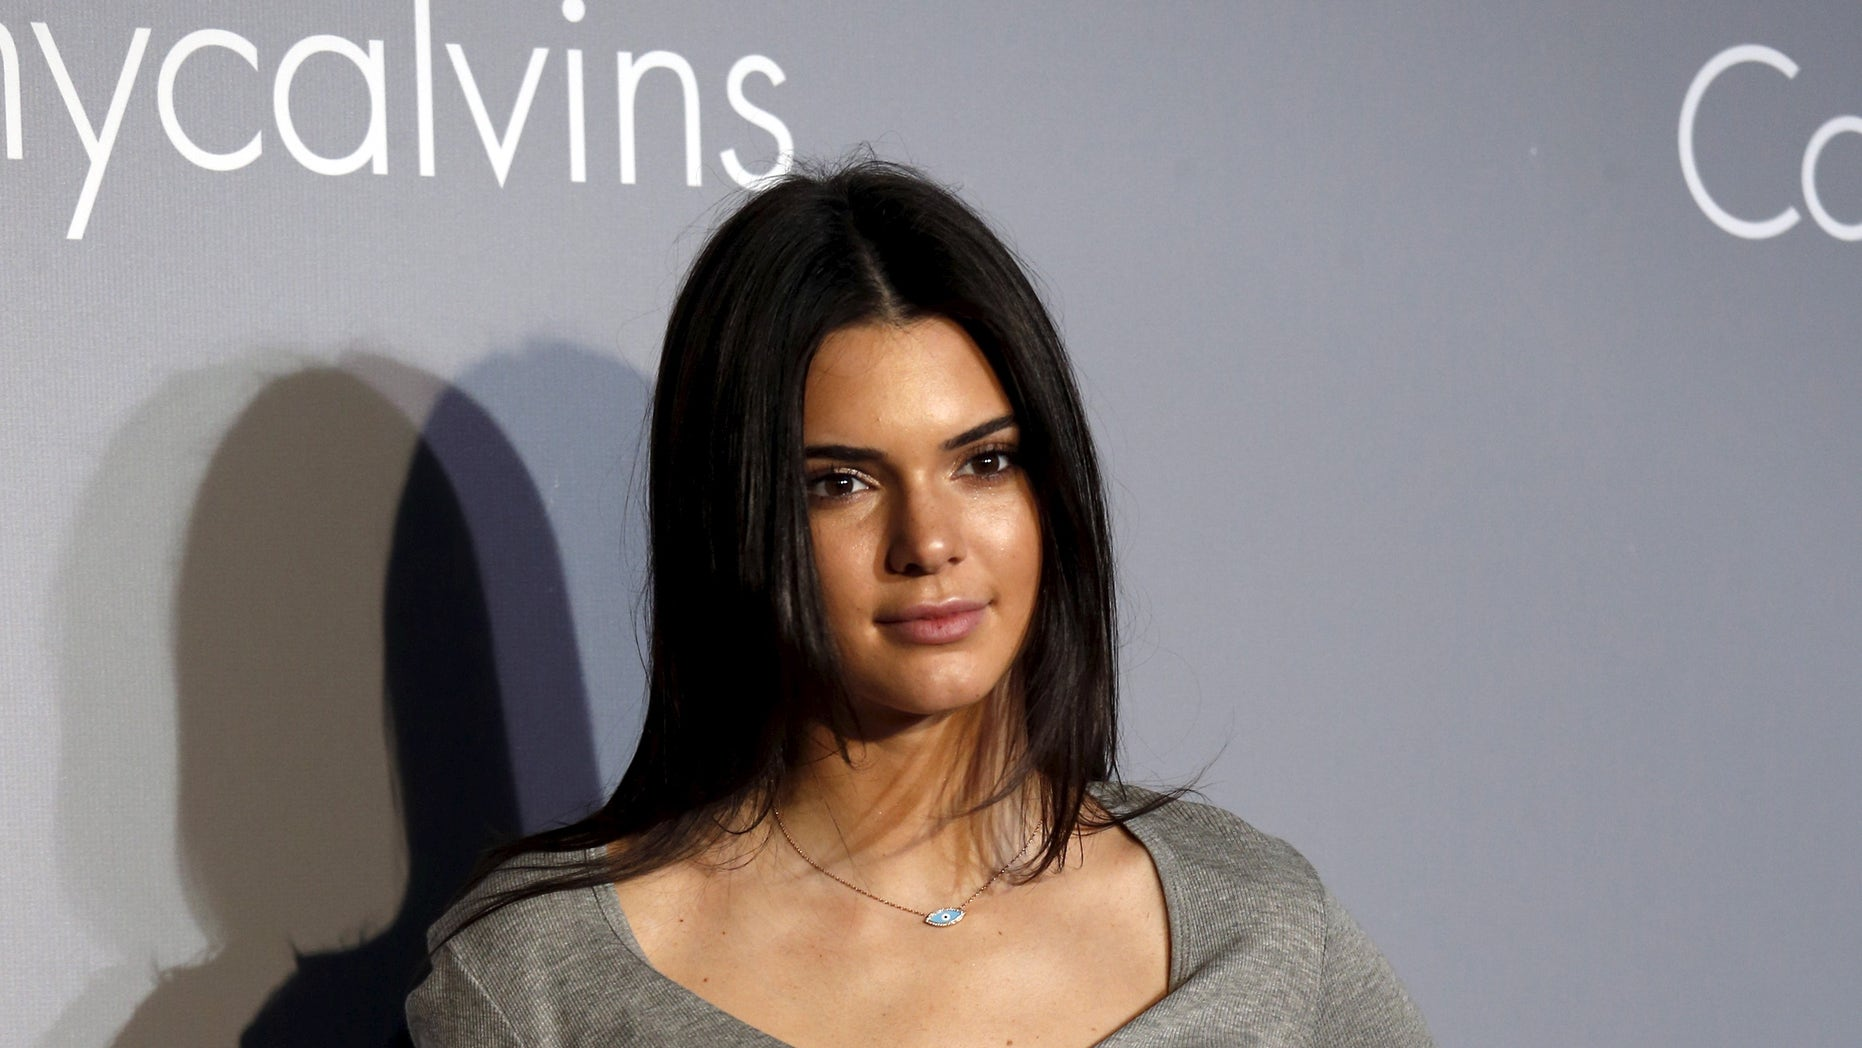 June 11, 2015. American fashion model and television personality Kendall Jenner looks on as she attends a music event hosted by Calvin Klein Jeans in Hong Kong.